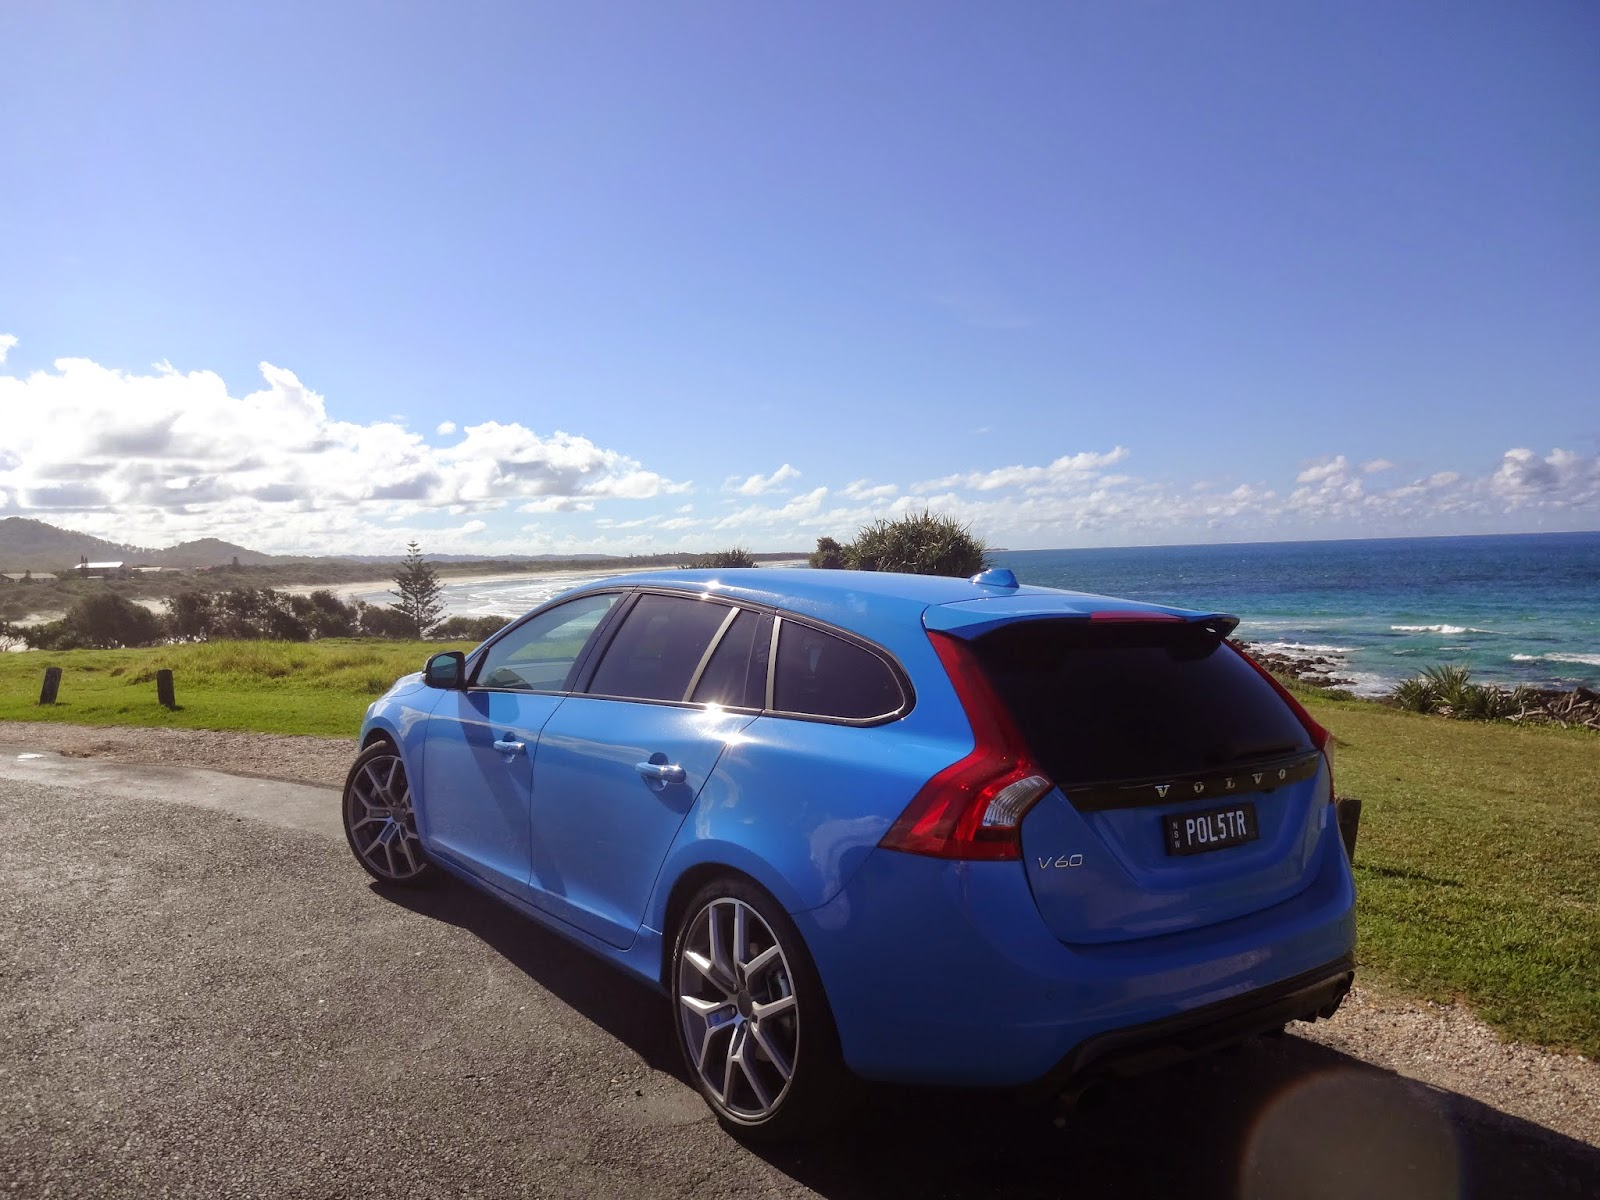 Volvo V60 Polestar soaks up the sun at the beach